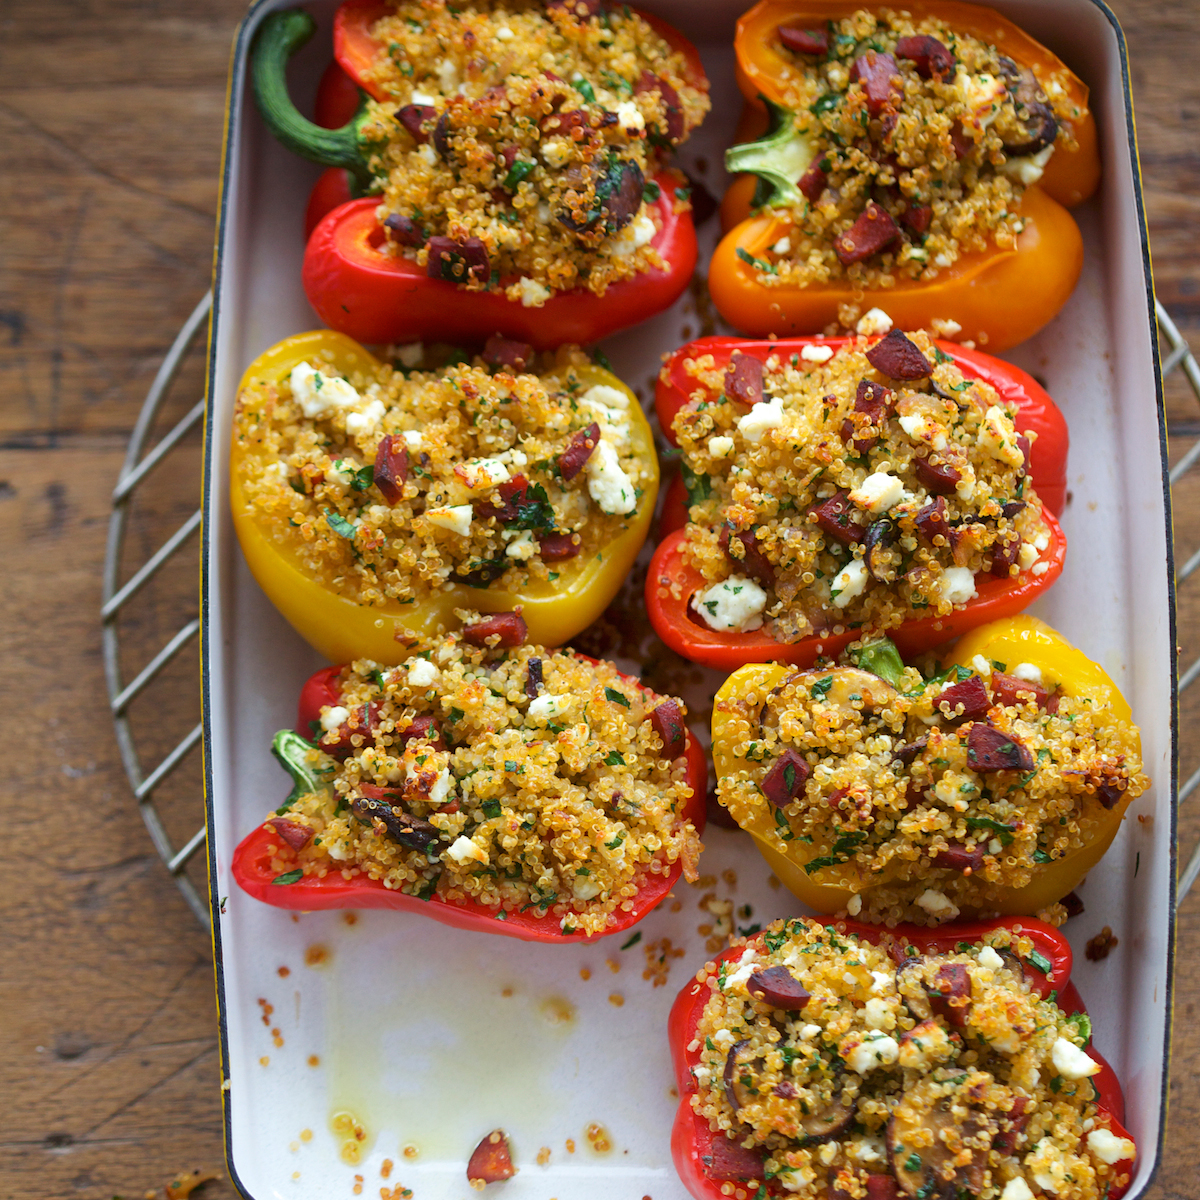 Stuffed Peppers with Quinoa, Chorizo and Mushrooms